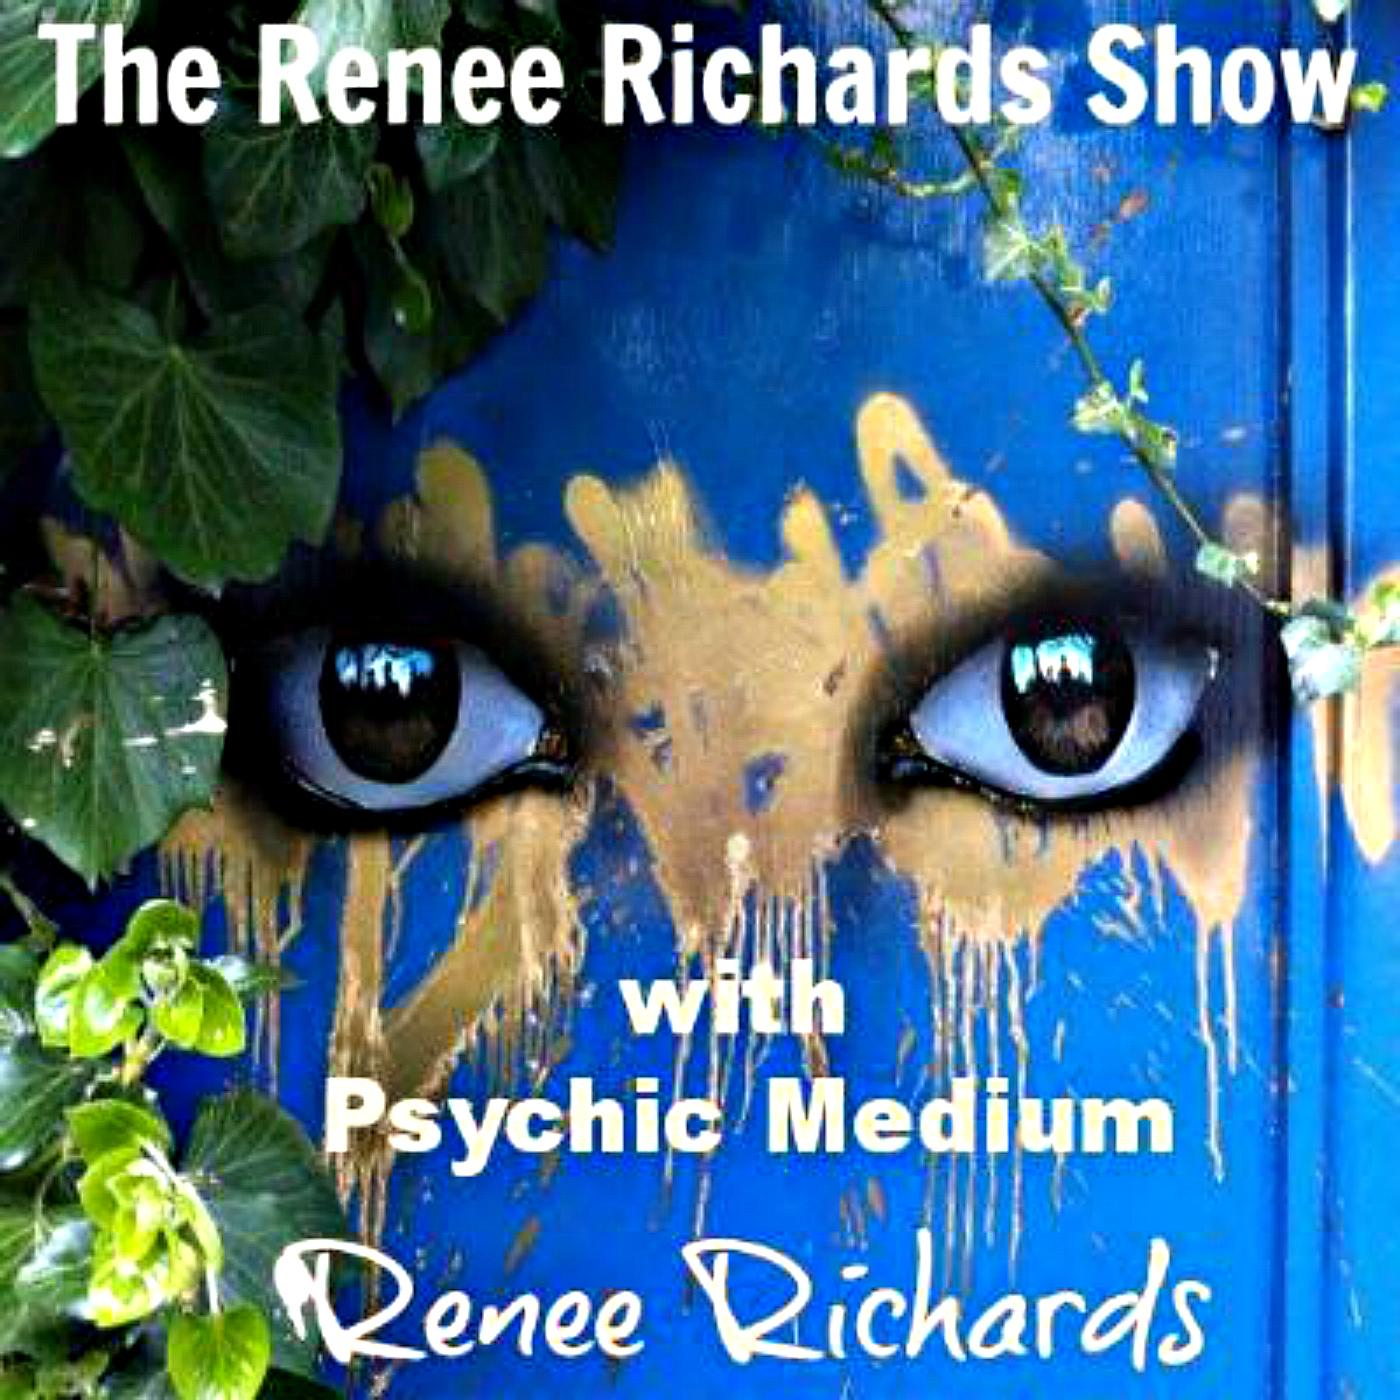 The Renee Richards Show